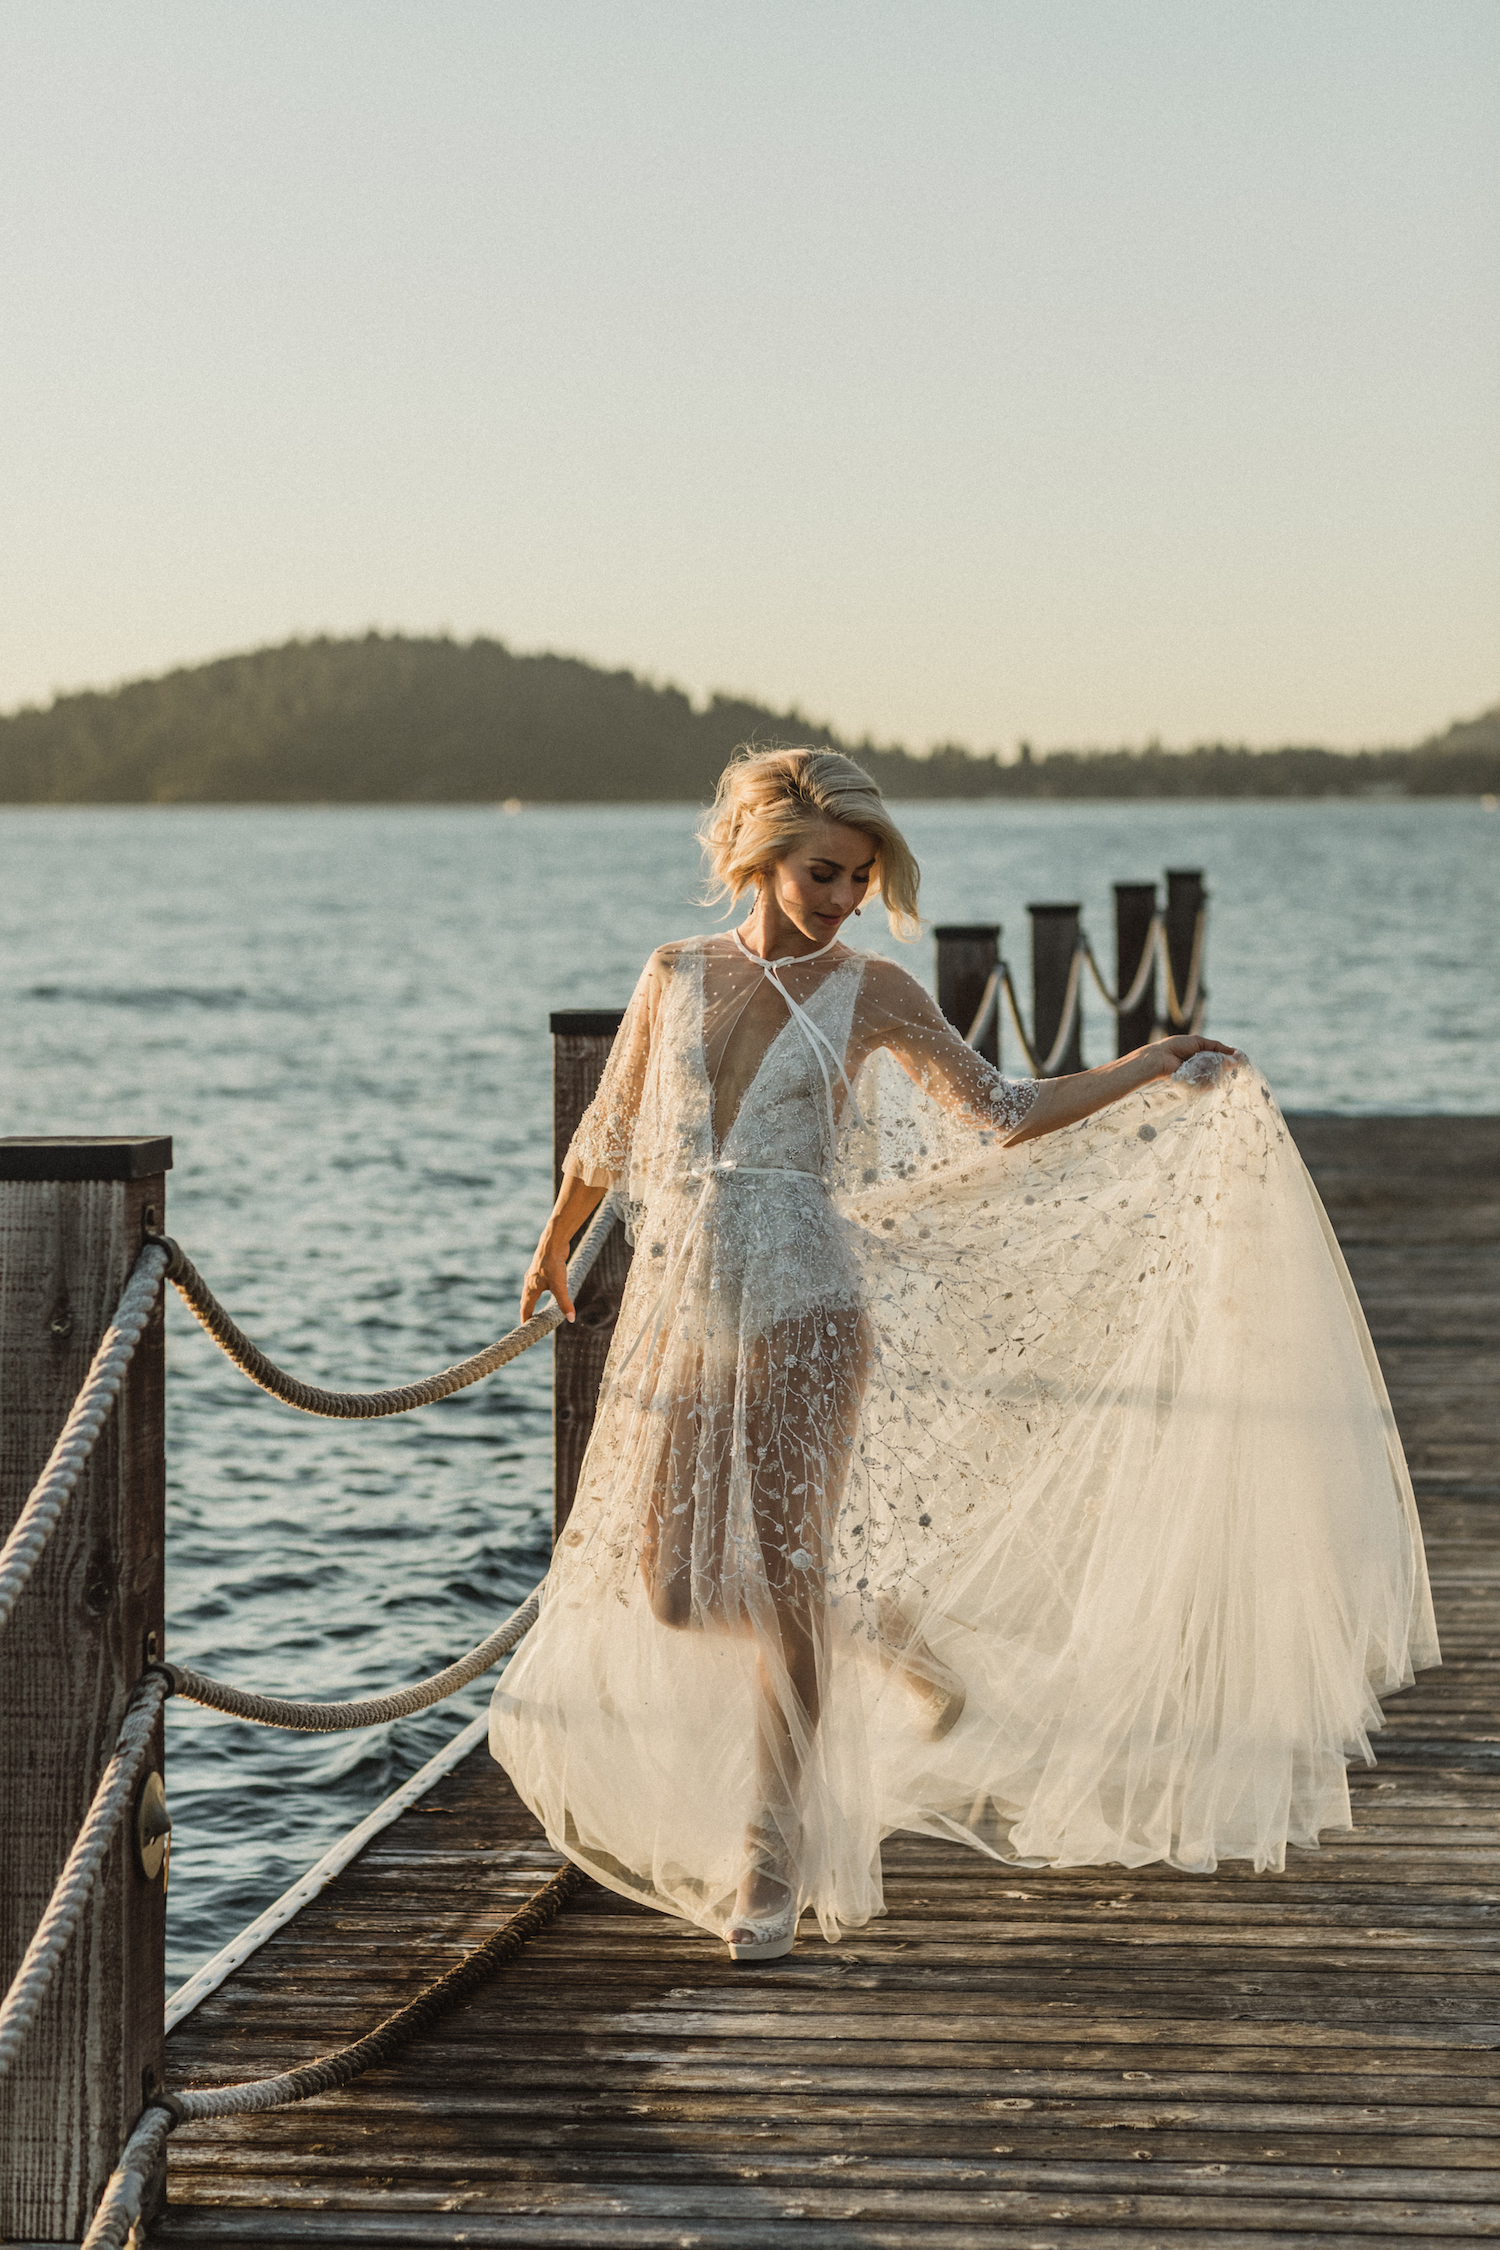 Julianne Hough and Brooks Laich Wedding - Wild Bloom Floral - Sarah Falugo Photography - Simply Troy Event Design 21.jpeg